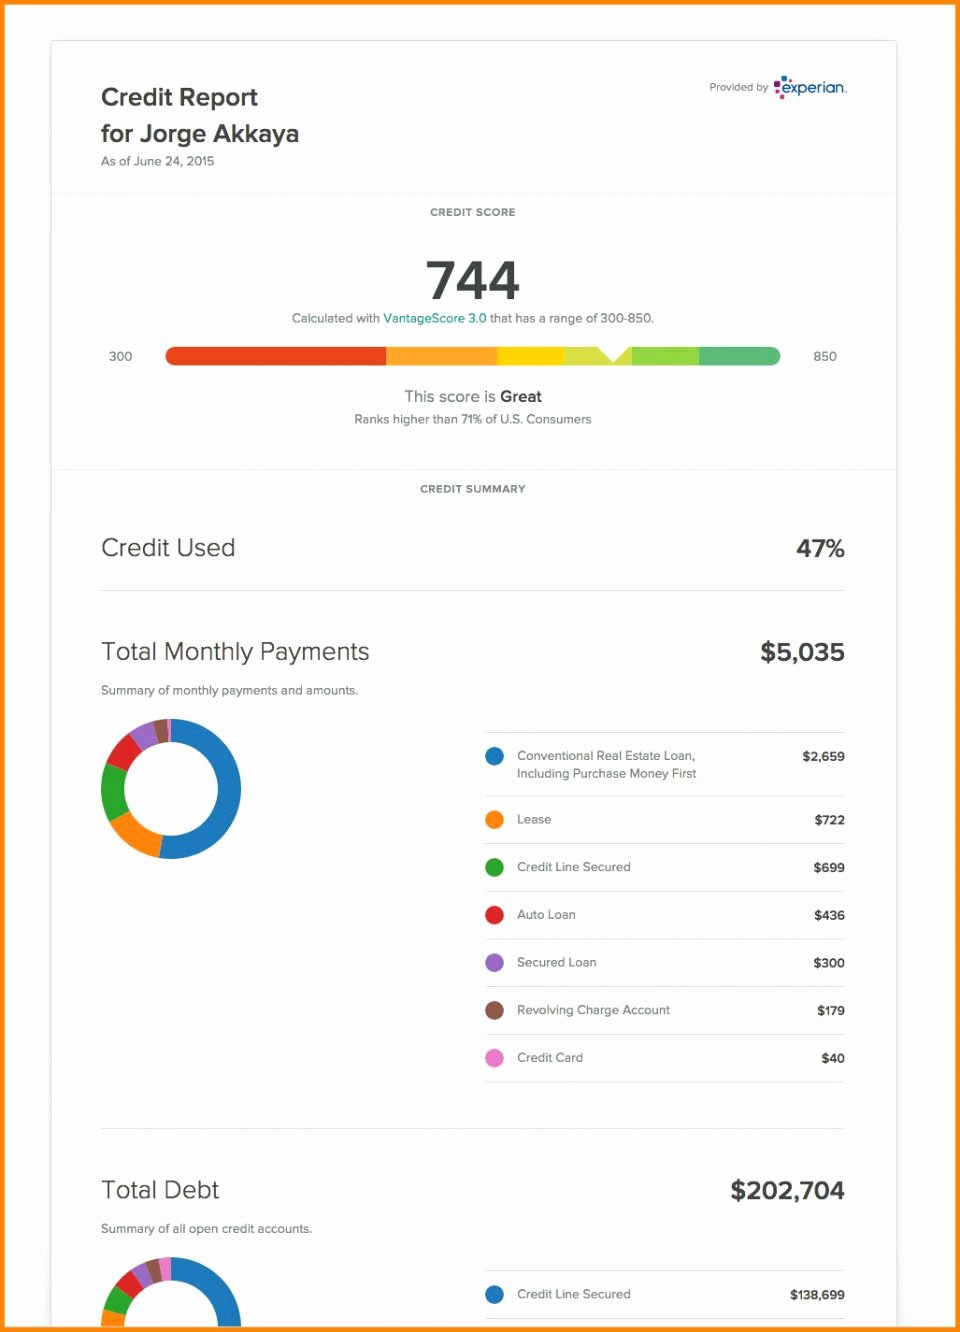 Credit Report Template Free Awesome Fake Credit Report Template